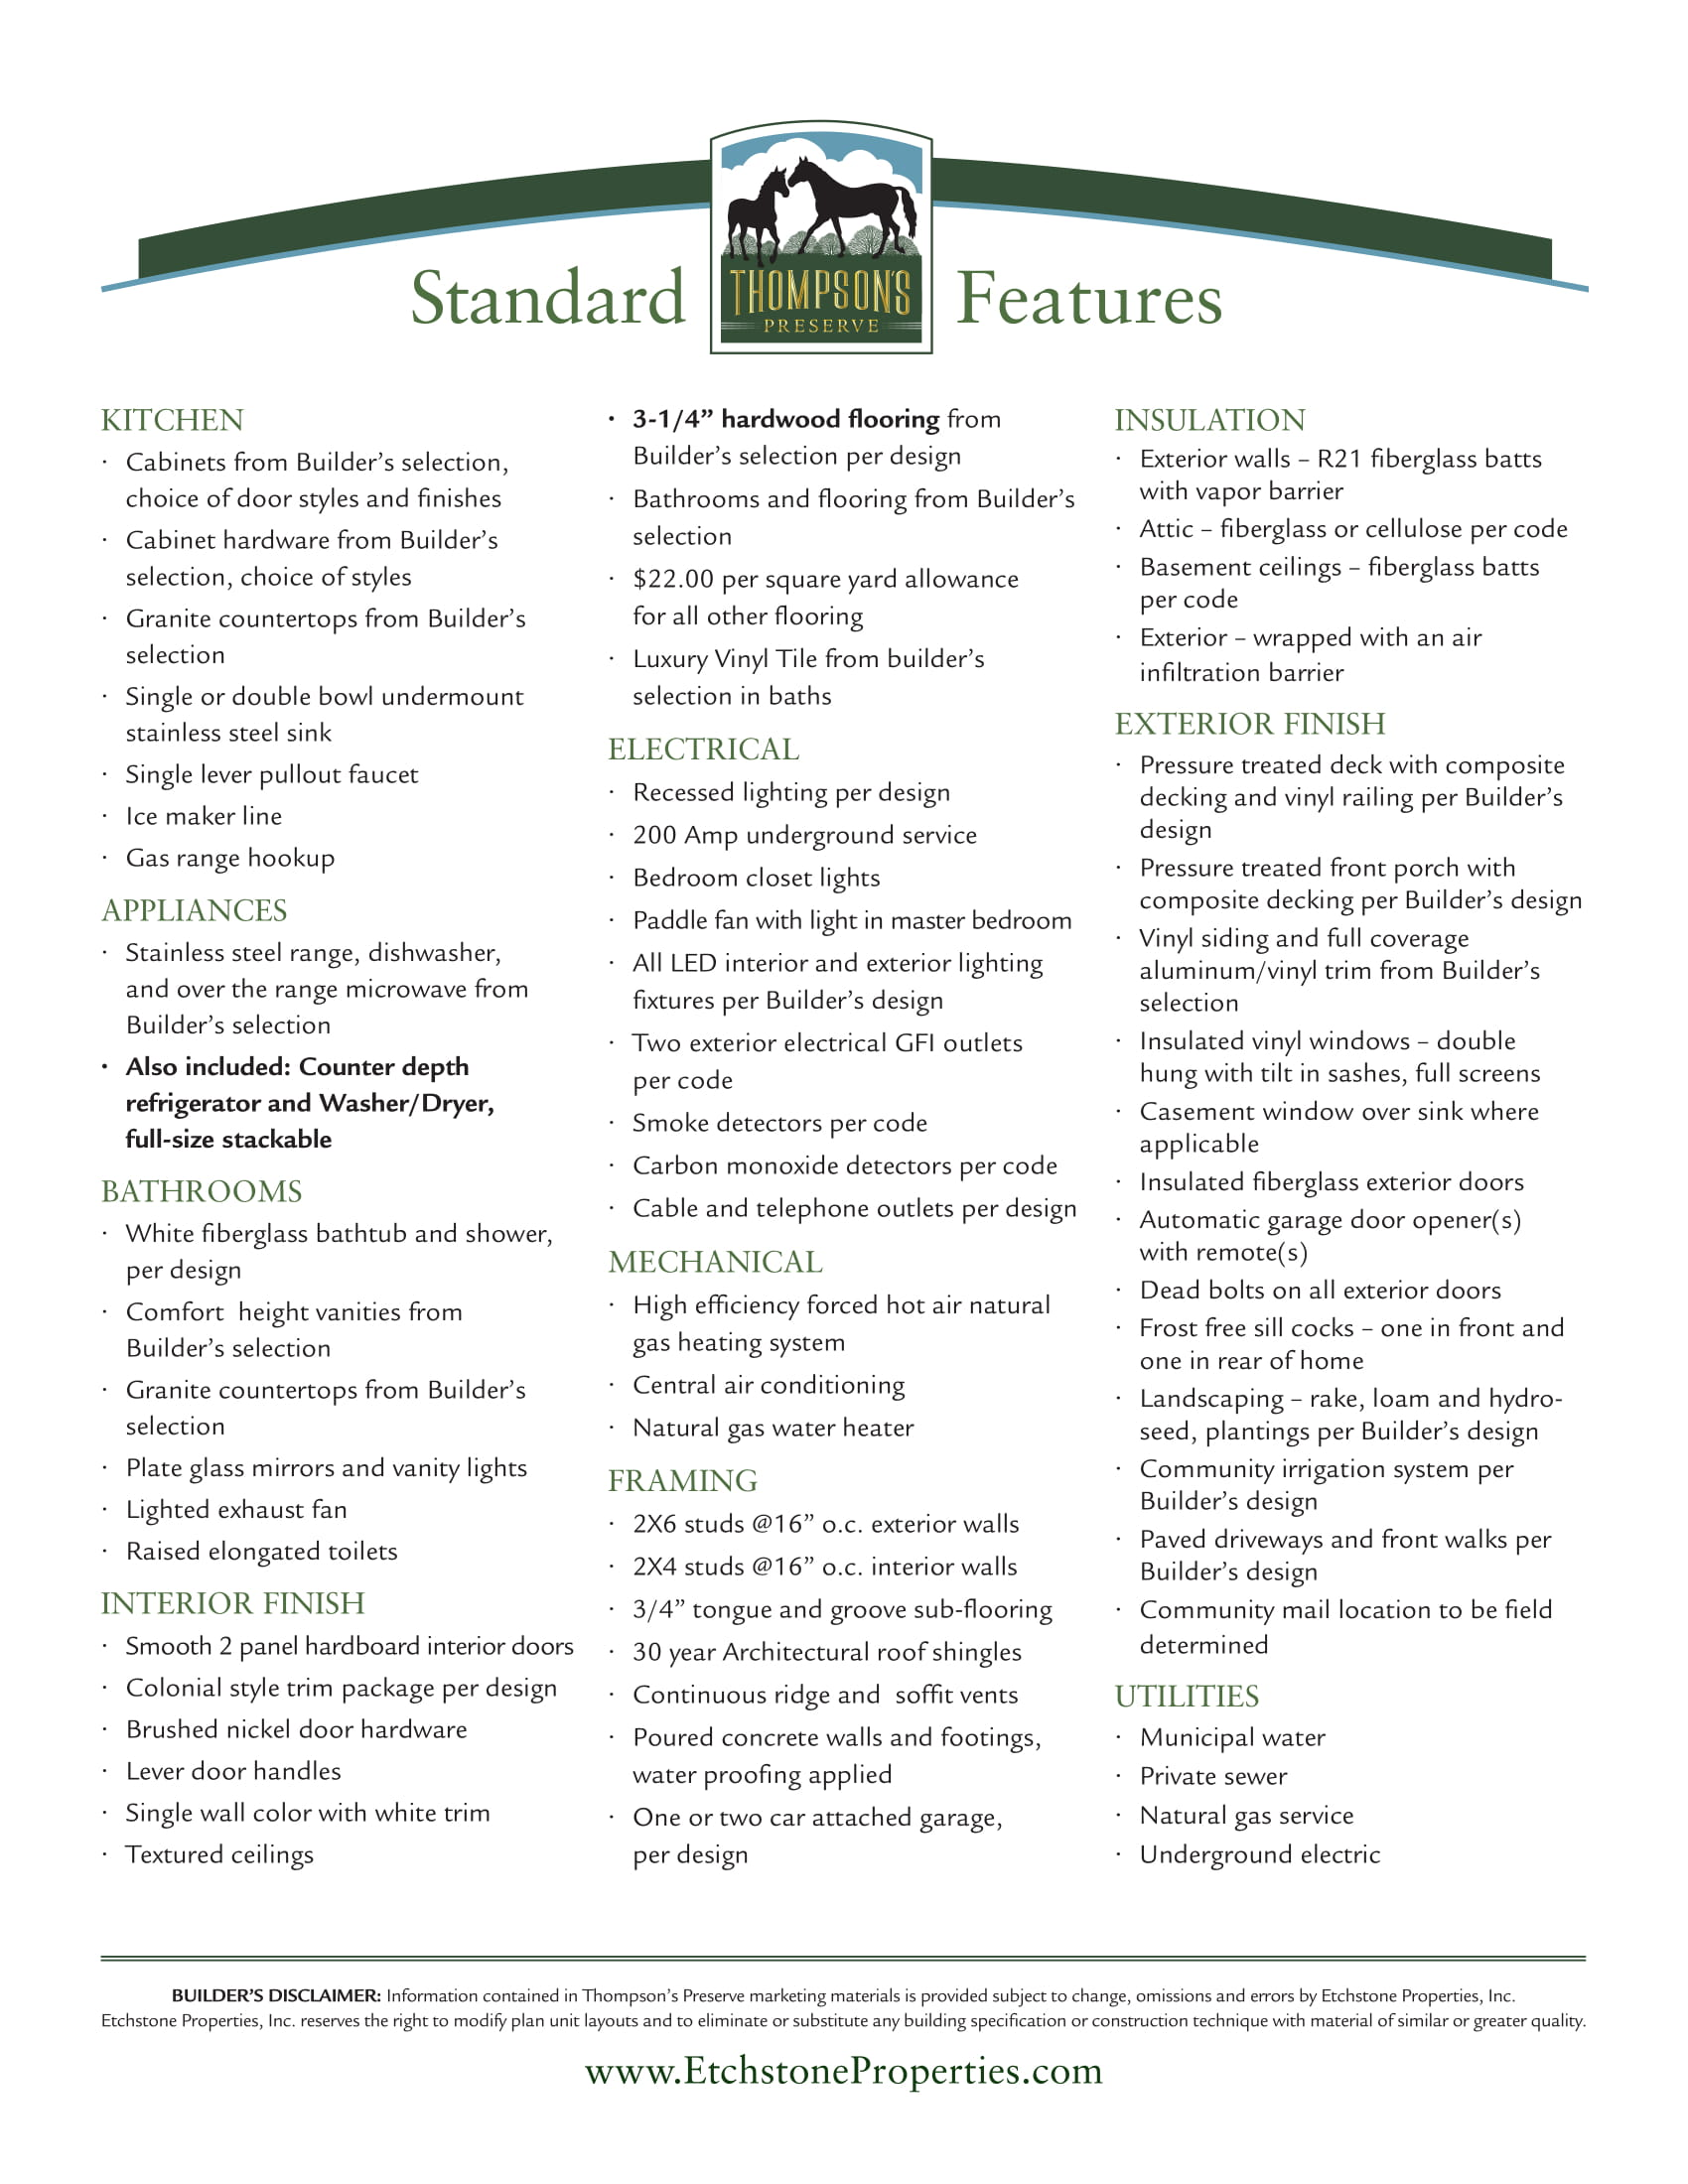 Standard Features